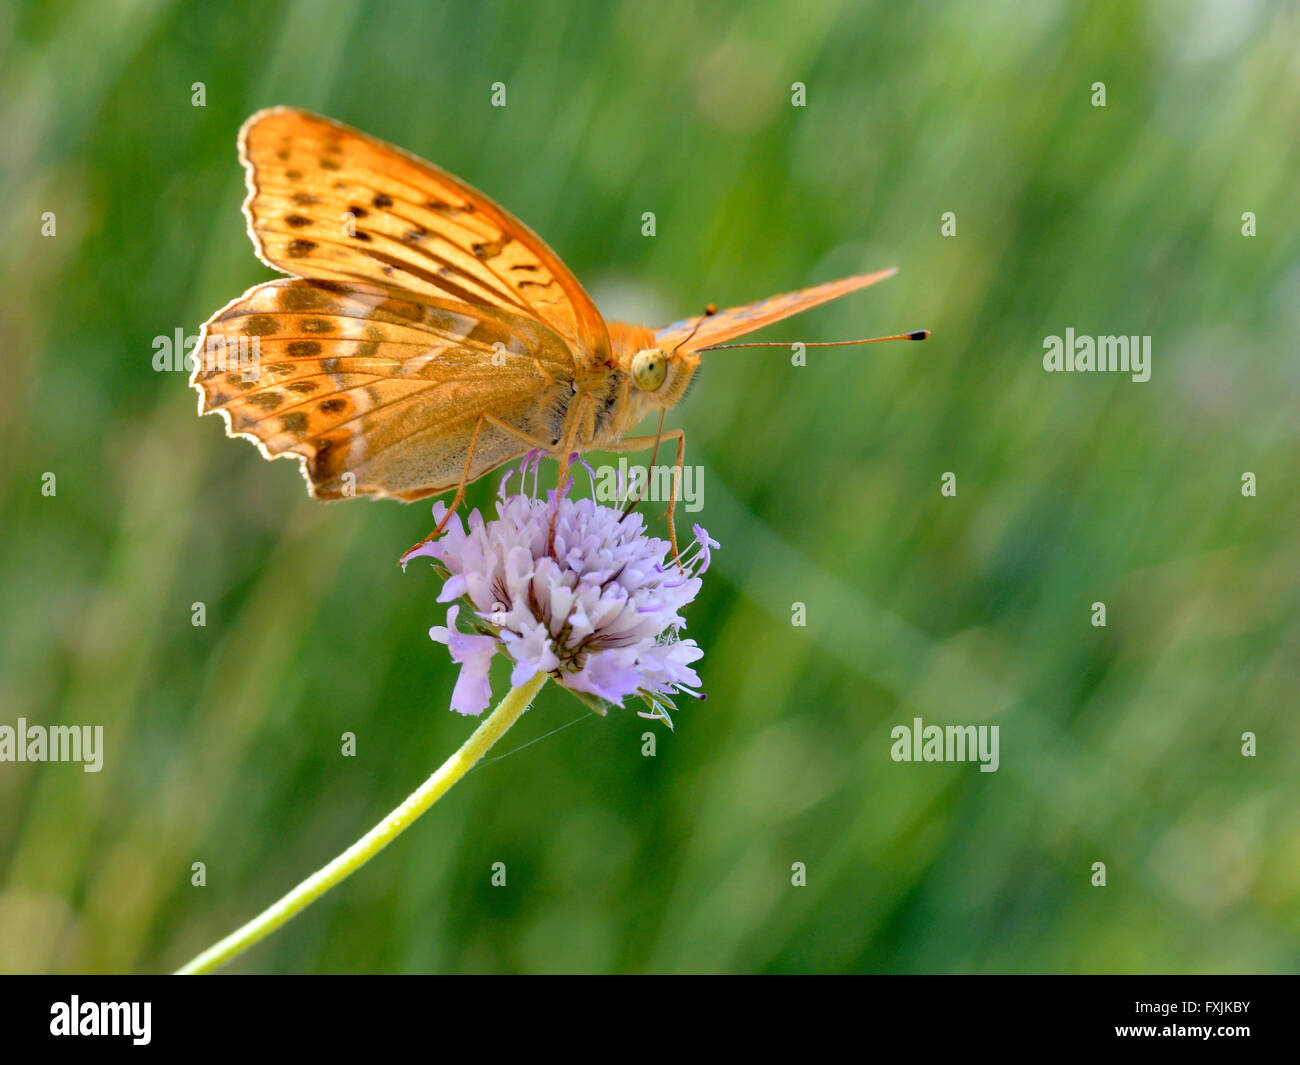 Male Silver-washed Fritillary butterfly (Argynnis paphia) feeding on scabiosa flower - Stock Image